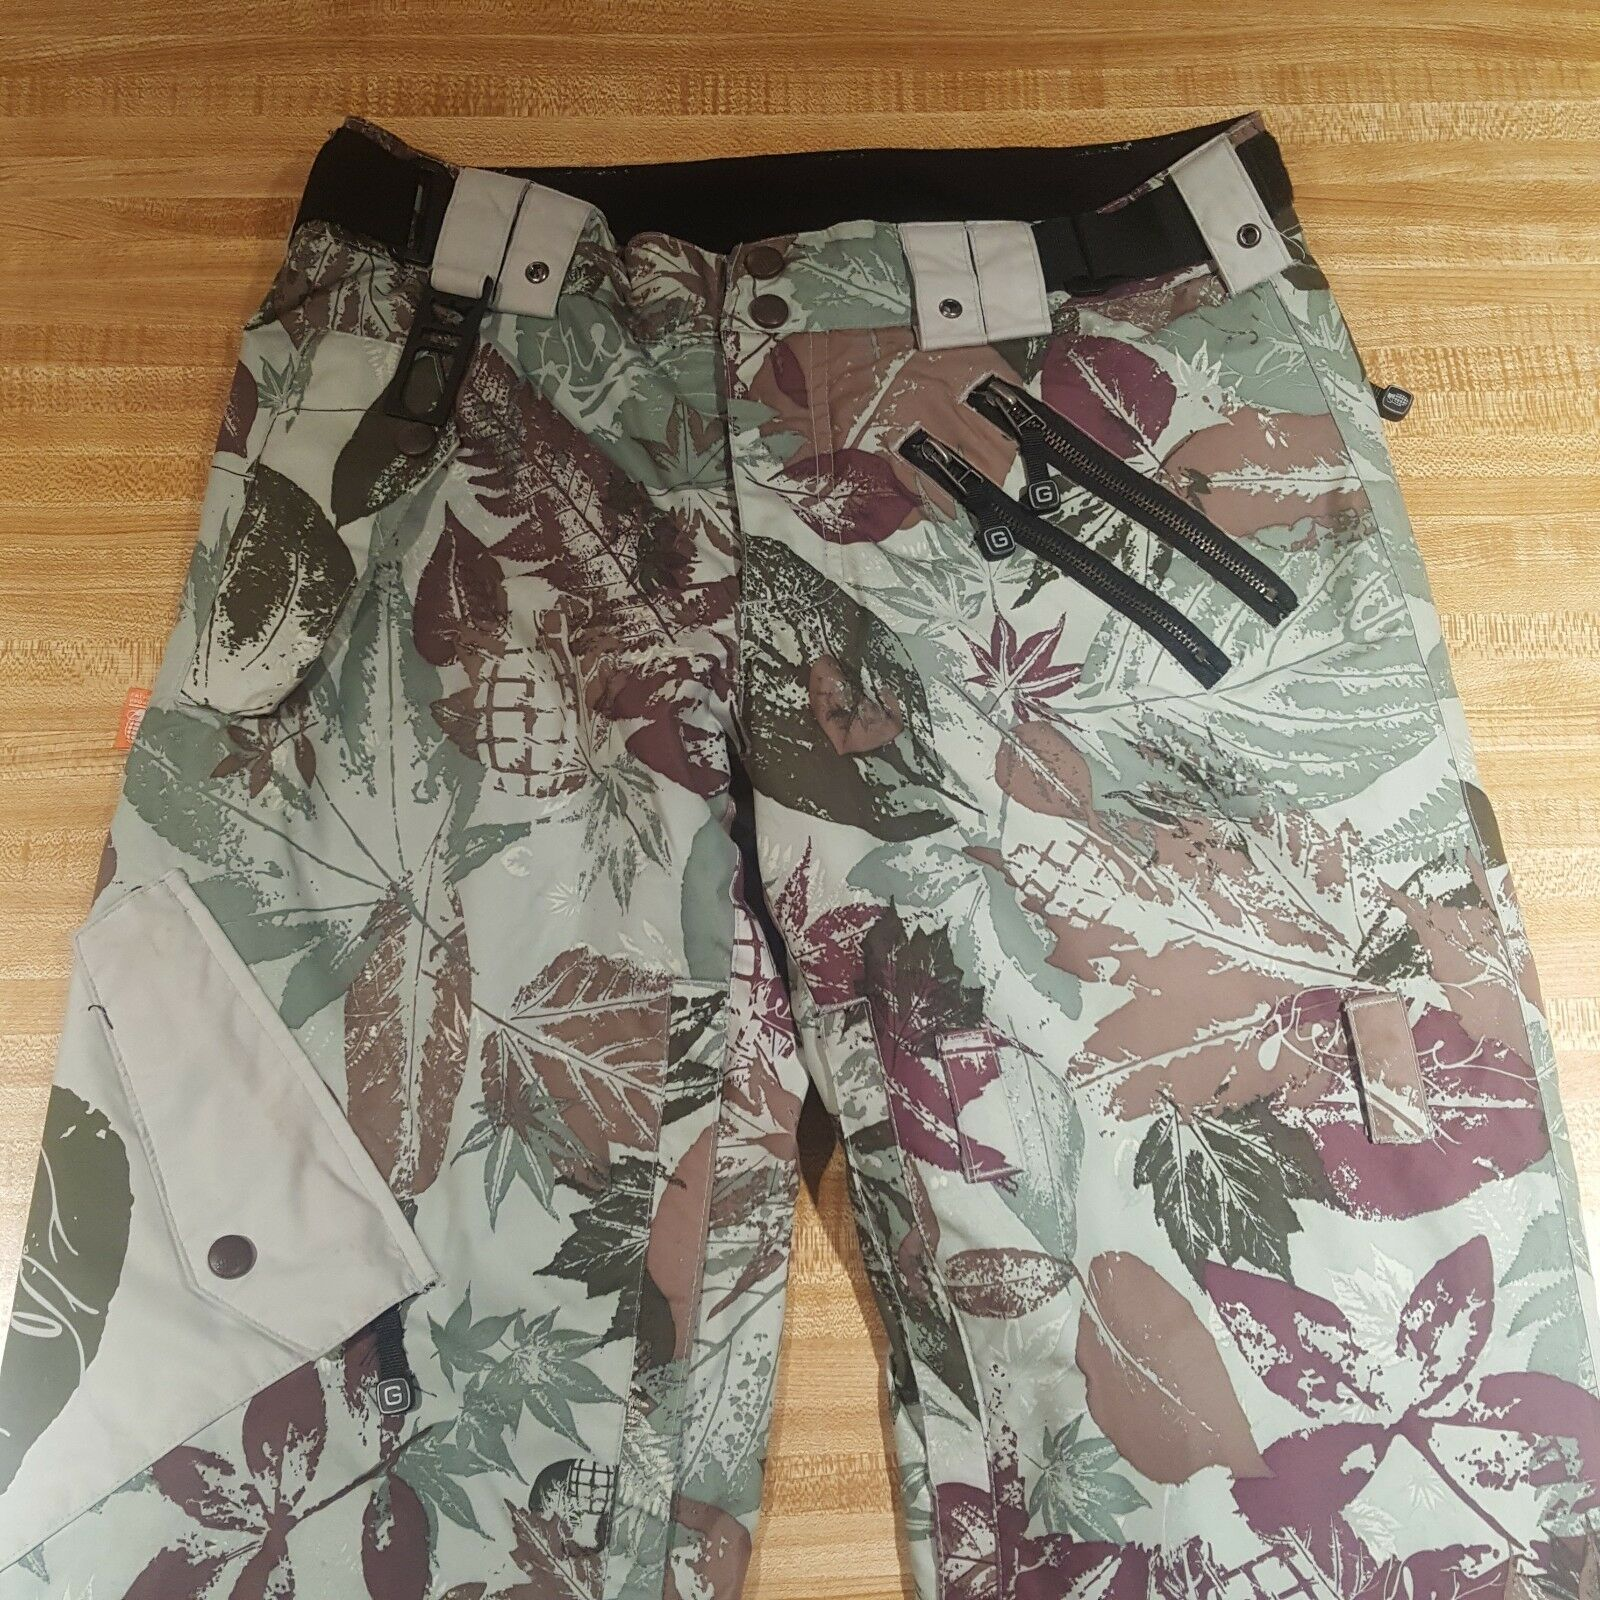 Grenade  Fatigue Project Pants Ski Snowboards Camouflage Green Small  looking for sales agent